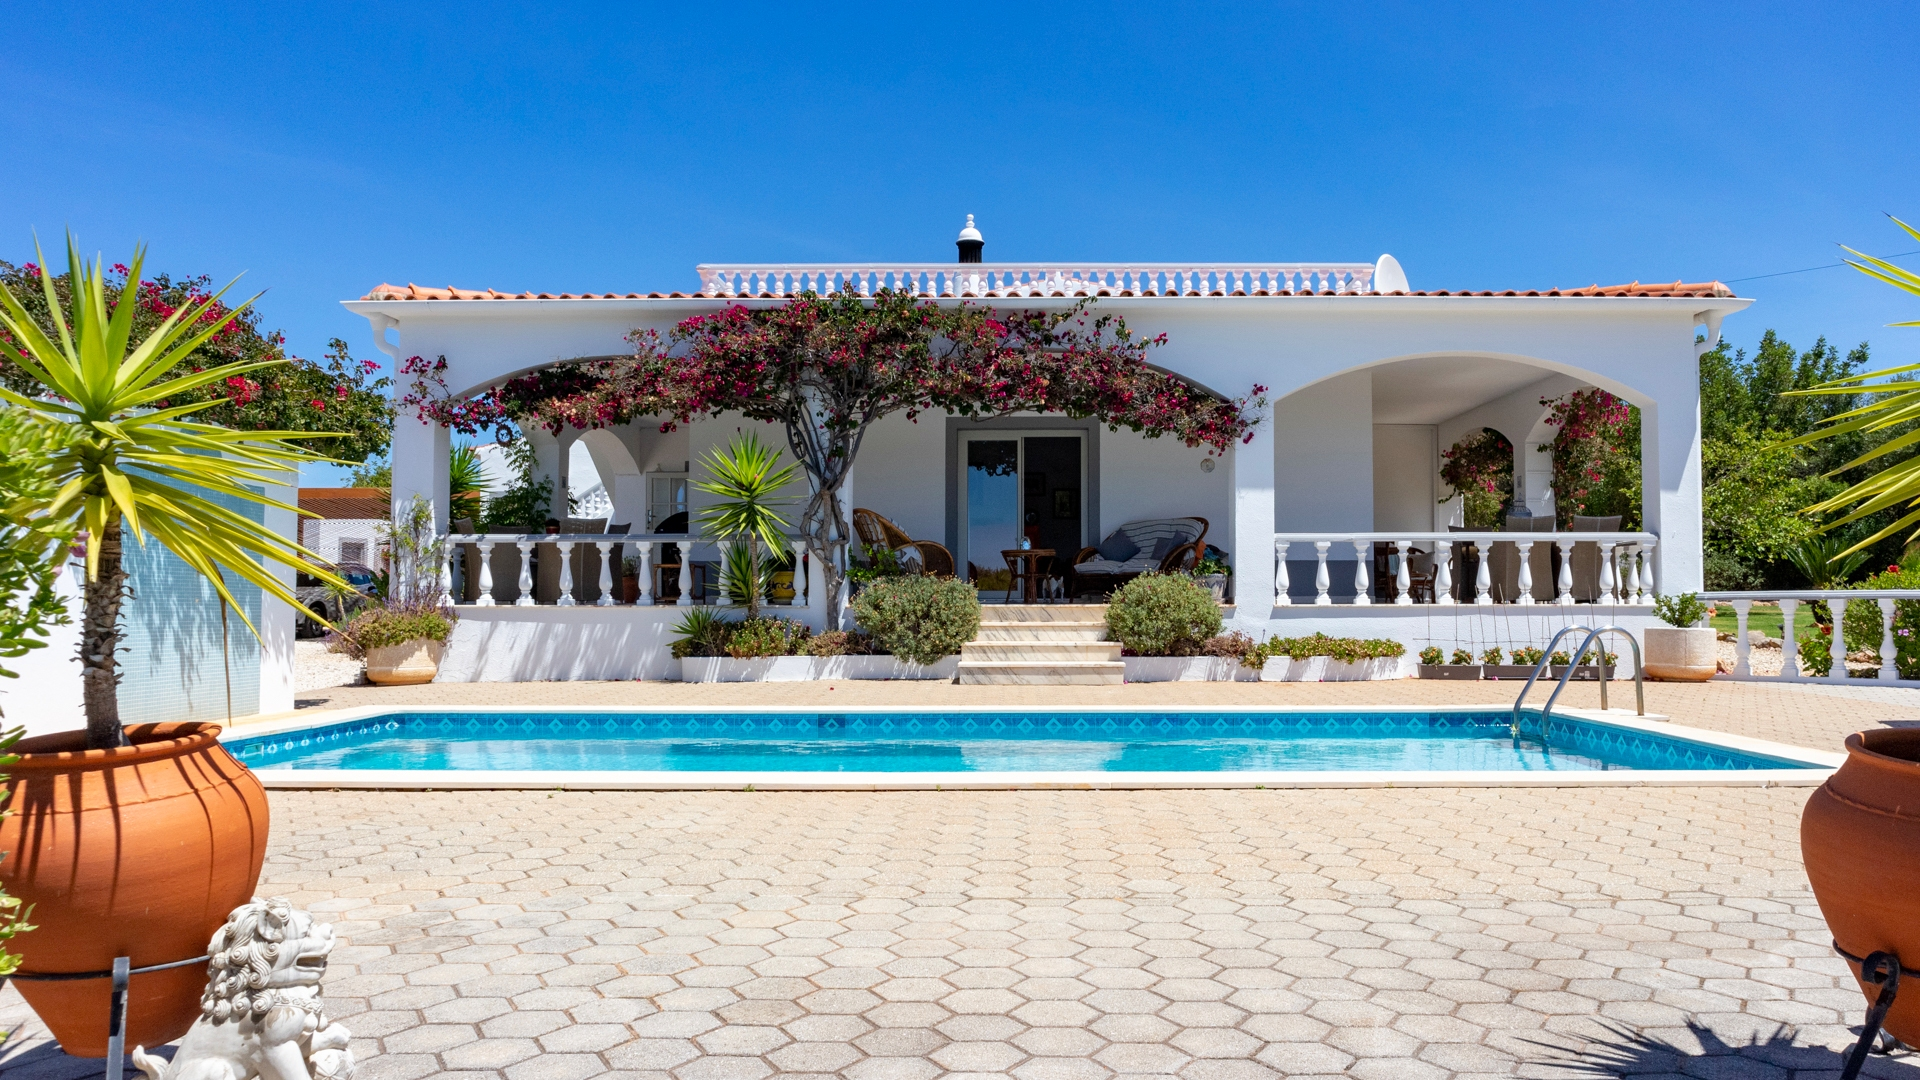 Renovated 4 bedroom Villa with pool and tennis court, between Silves and São Bartolomeu de Messines | 523 This south-facing, single-story villa is surrounded by greenery and is located only a short drive from Silves and São Bartolomeu de Messines, as well as the beaches.